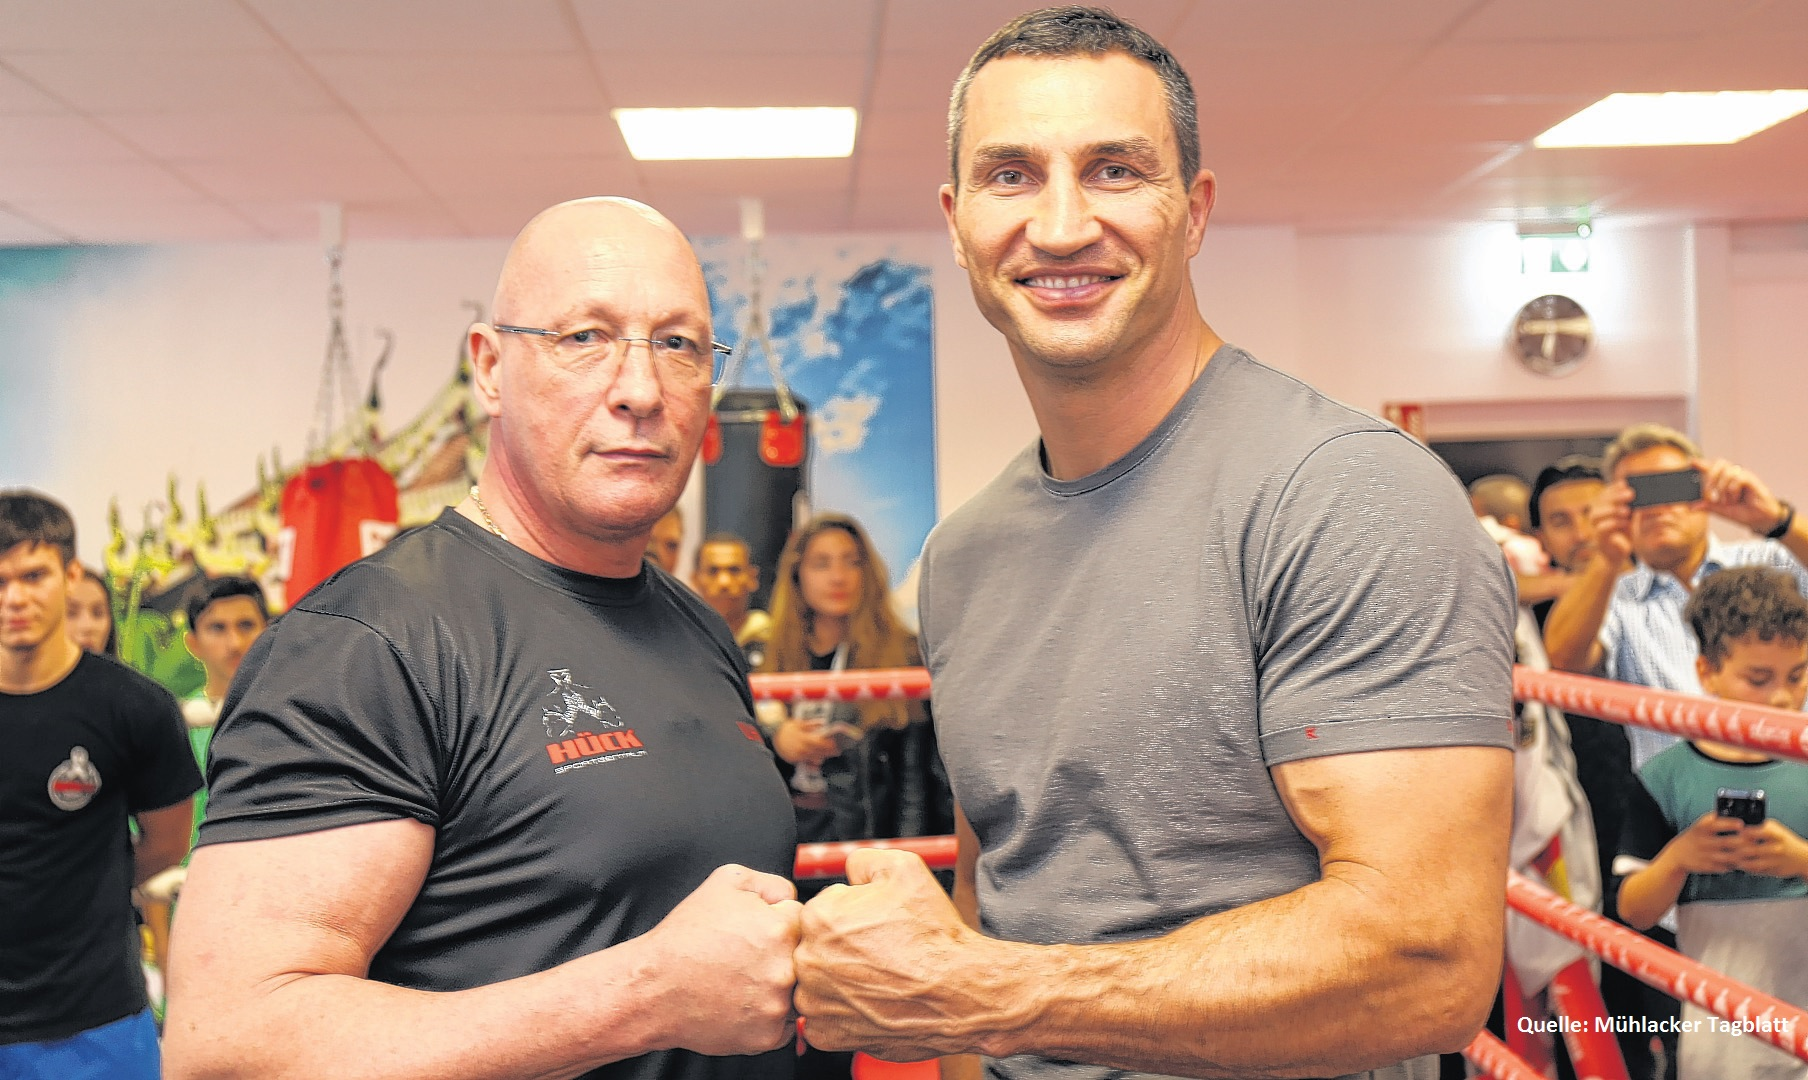 wladimir klitschko zu besuch in der lernstiftung h ck. Black Bedroom Furniture Sets. Home Design Ideas